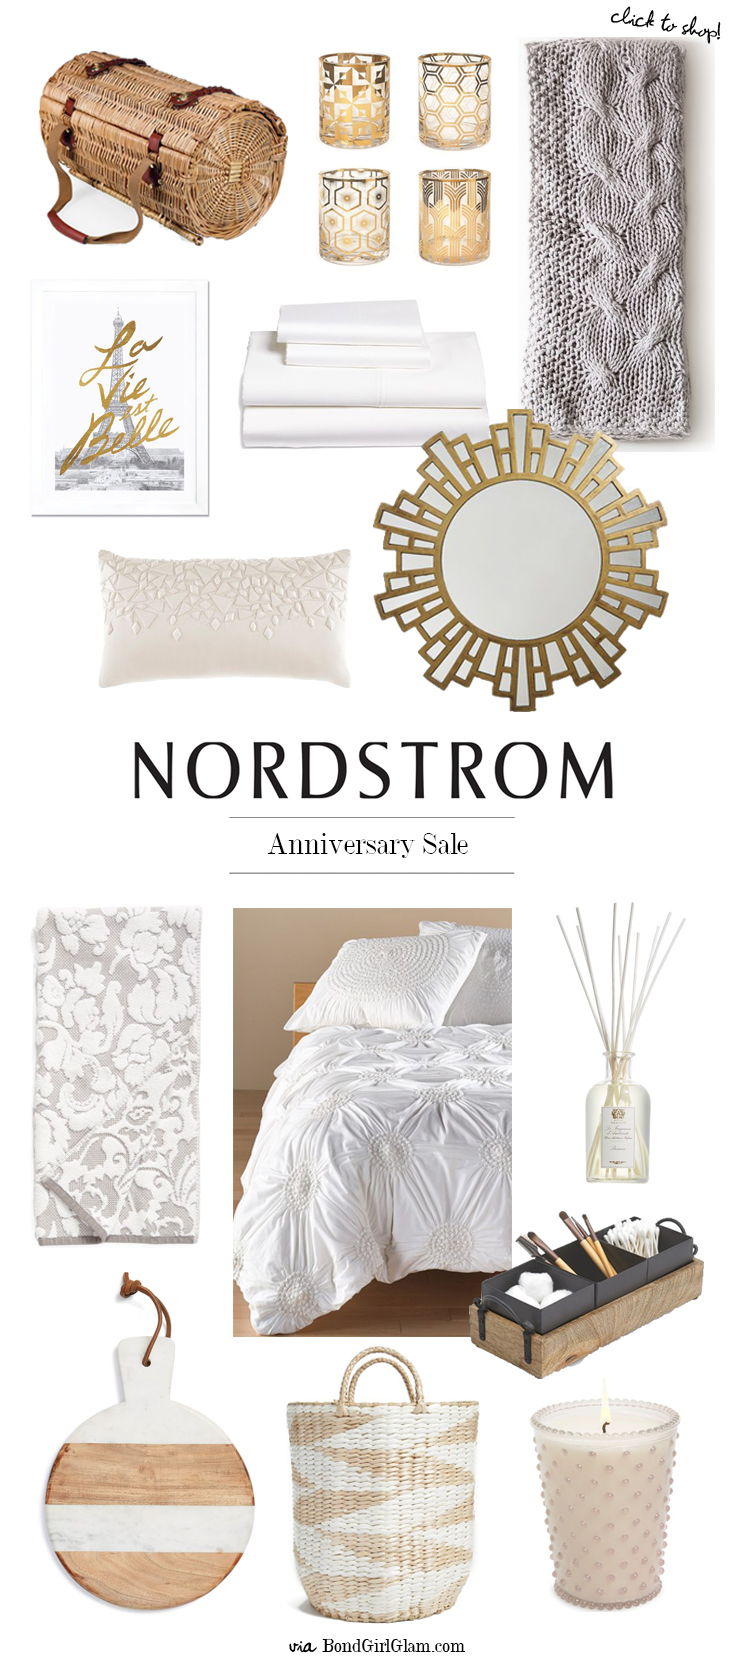 Charming Nordstrom Early Access Anniversary Sale // Home Décor